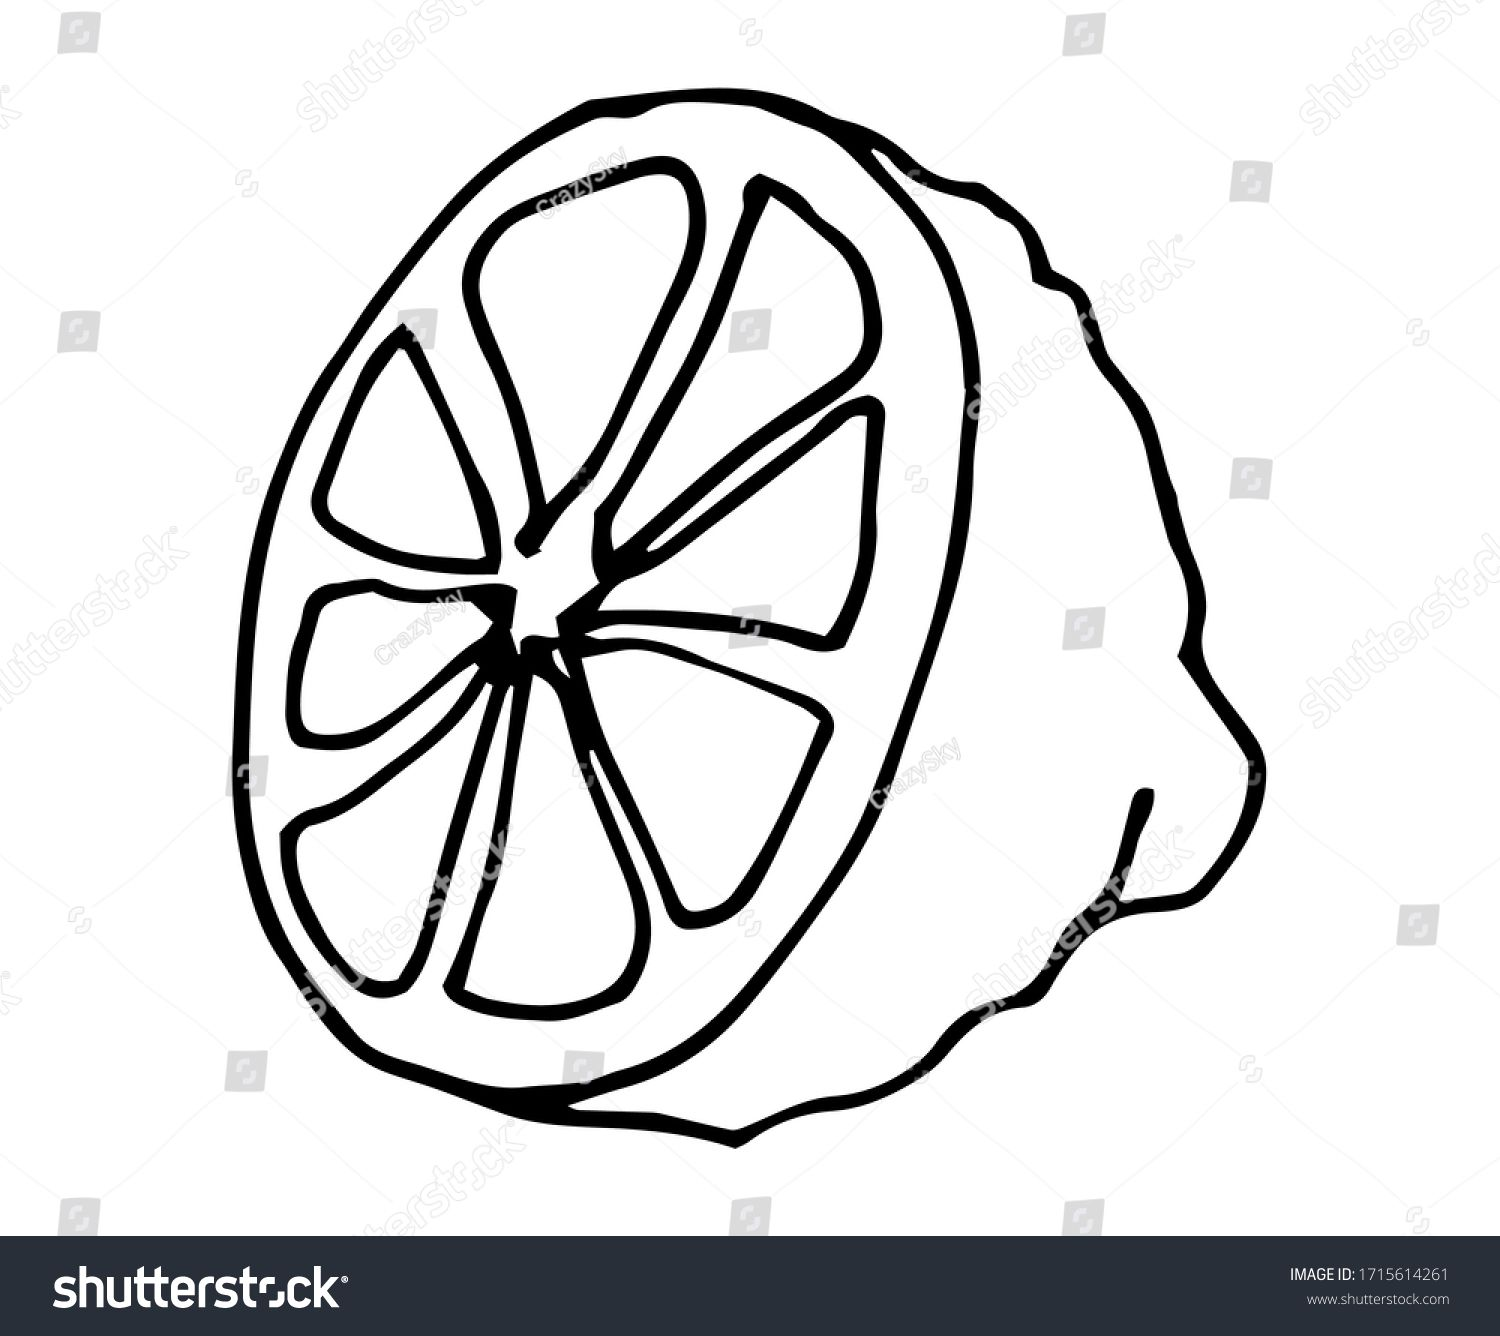 Cute Fabulous Lemon With Outlined For Coloring Book Isolated On A White Background Vector Illustration Of How To Draw Hands Coloring Books Vector Illustration